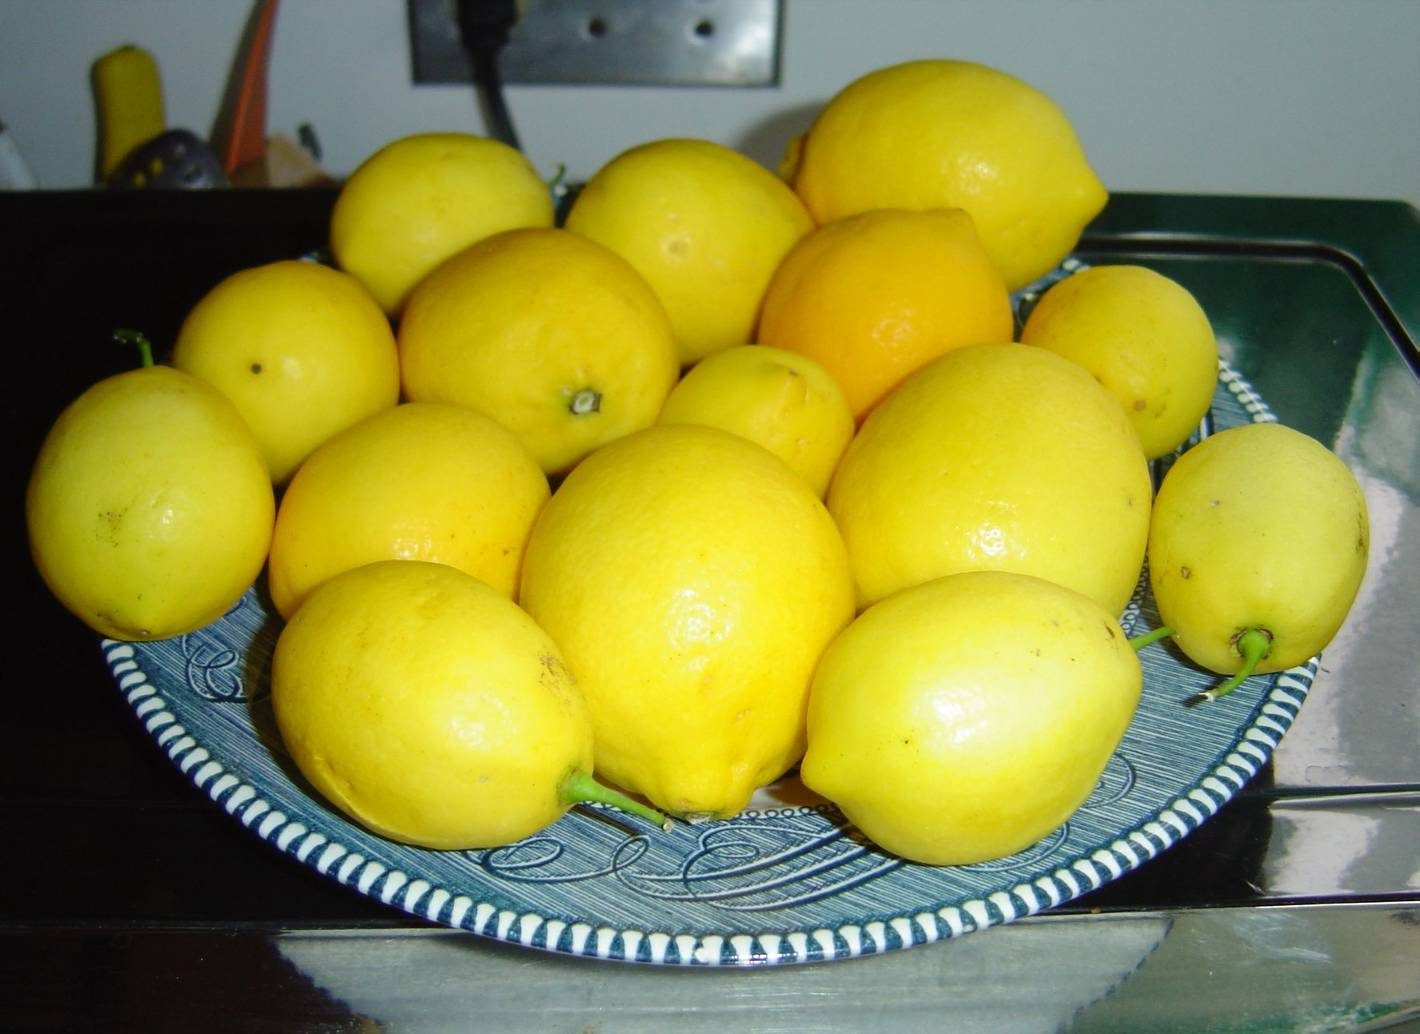 Lemons for My Lemon Sweet Buns With Lemon-Sugar Coating